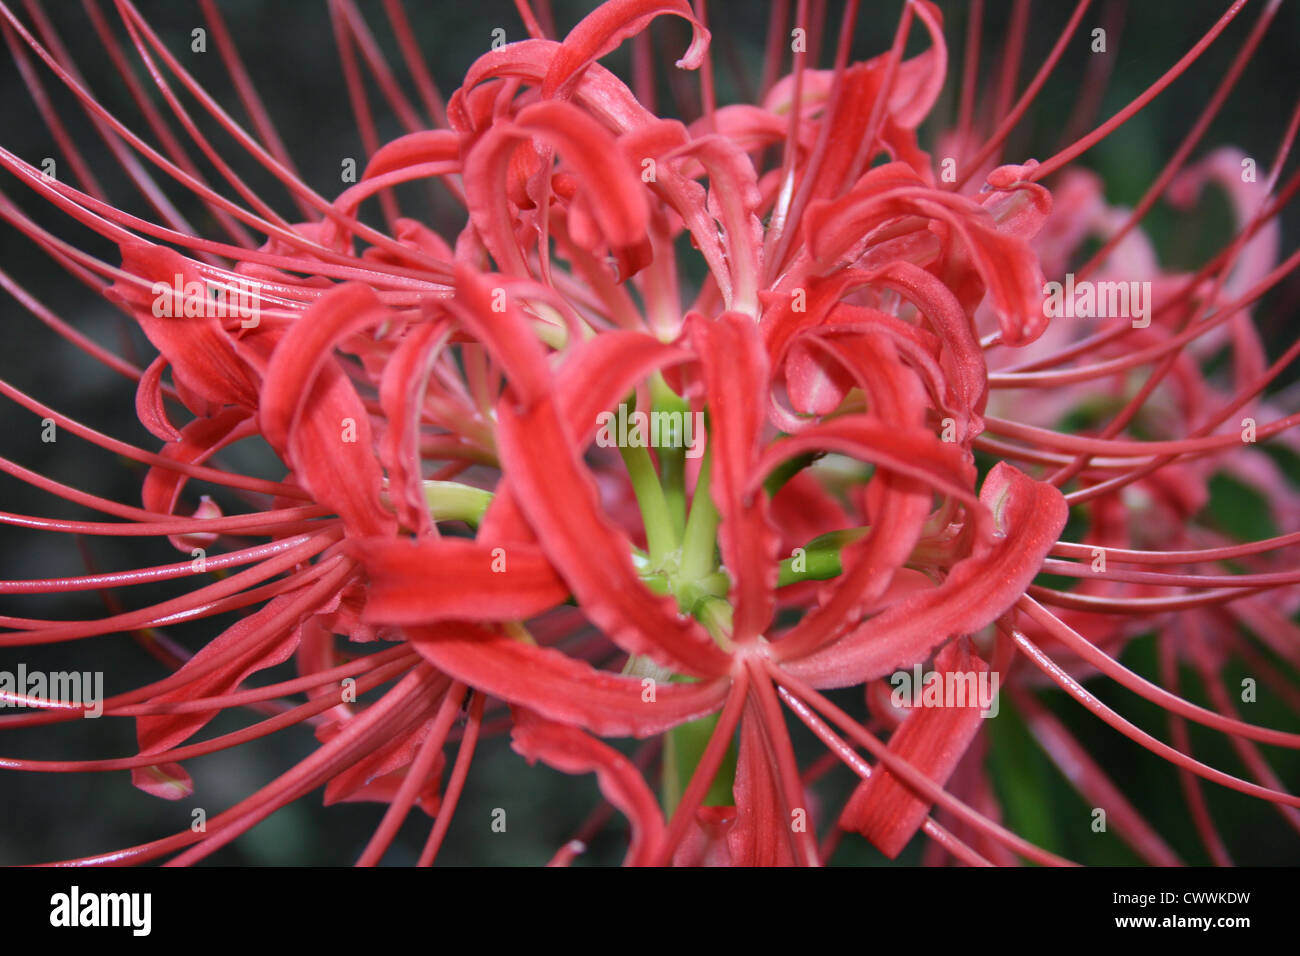 red spider lily lilies flower color photo art print picture Stock ...